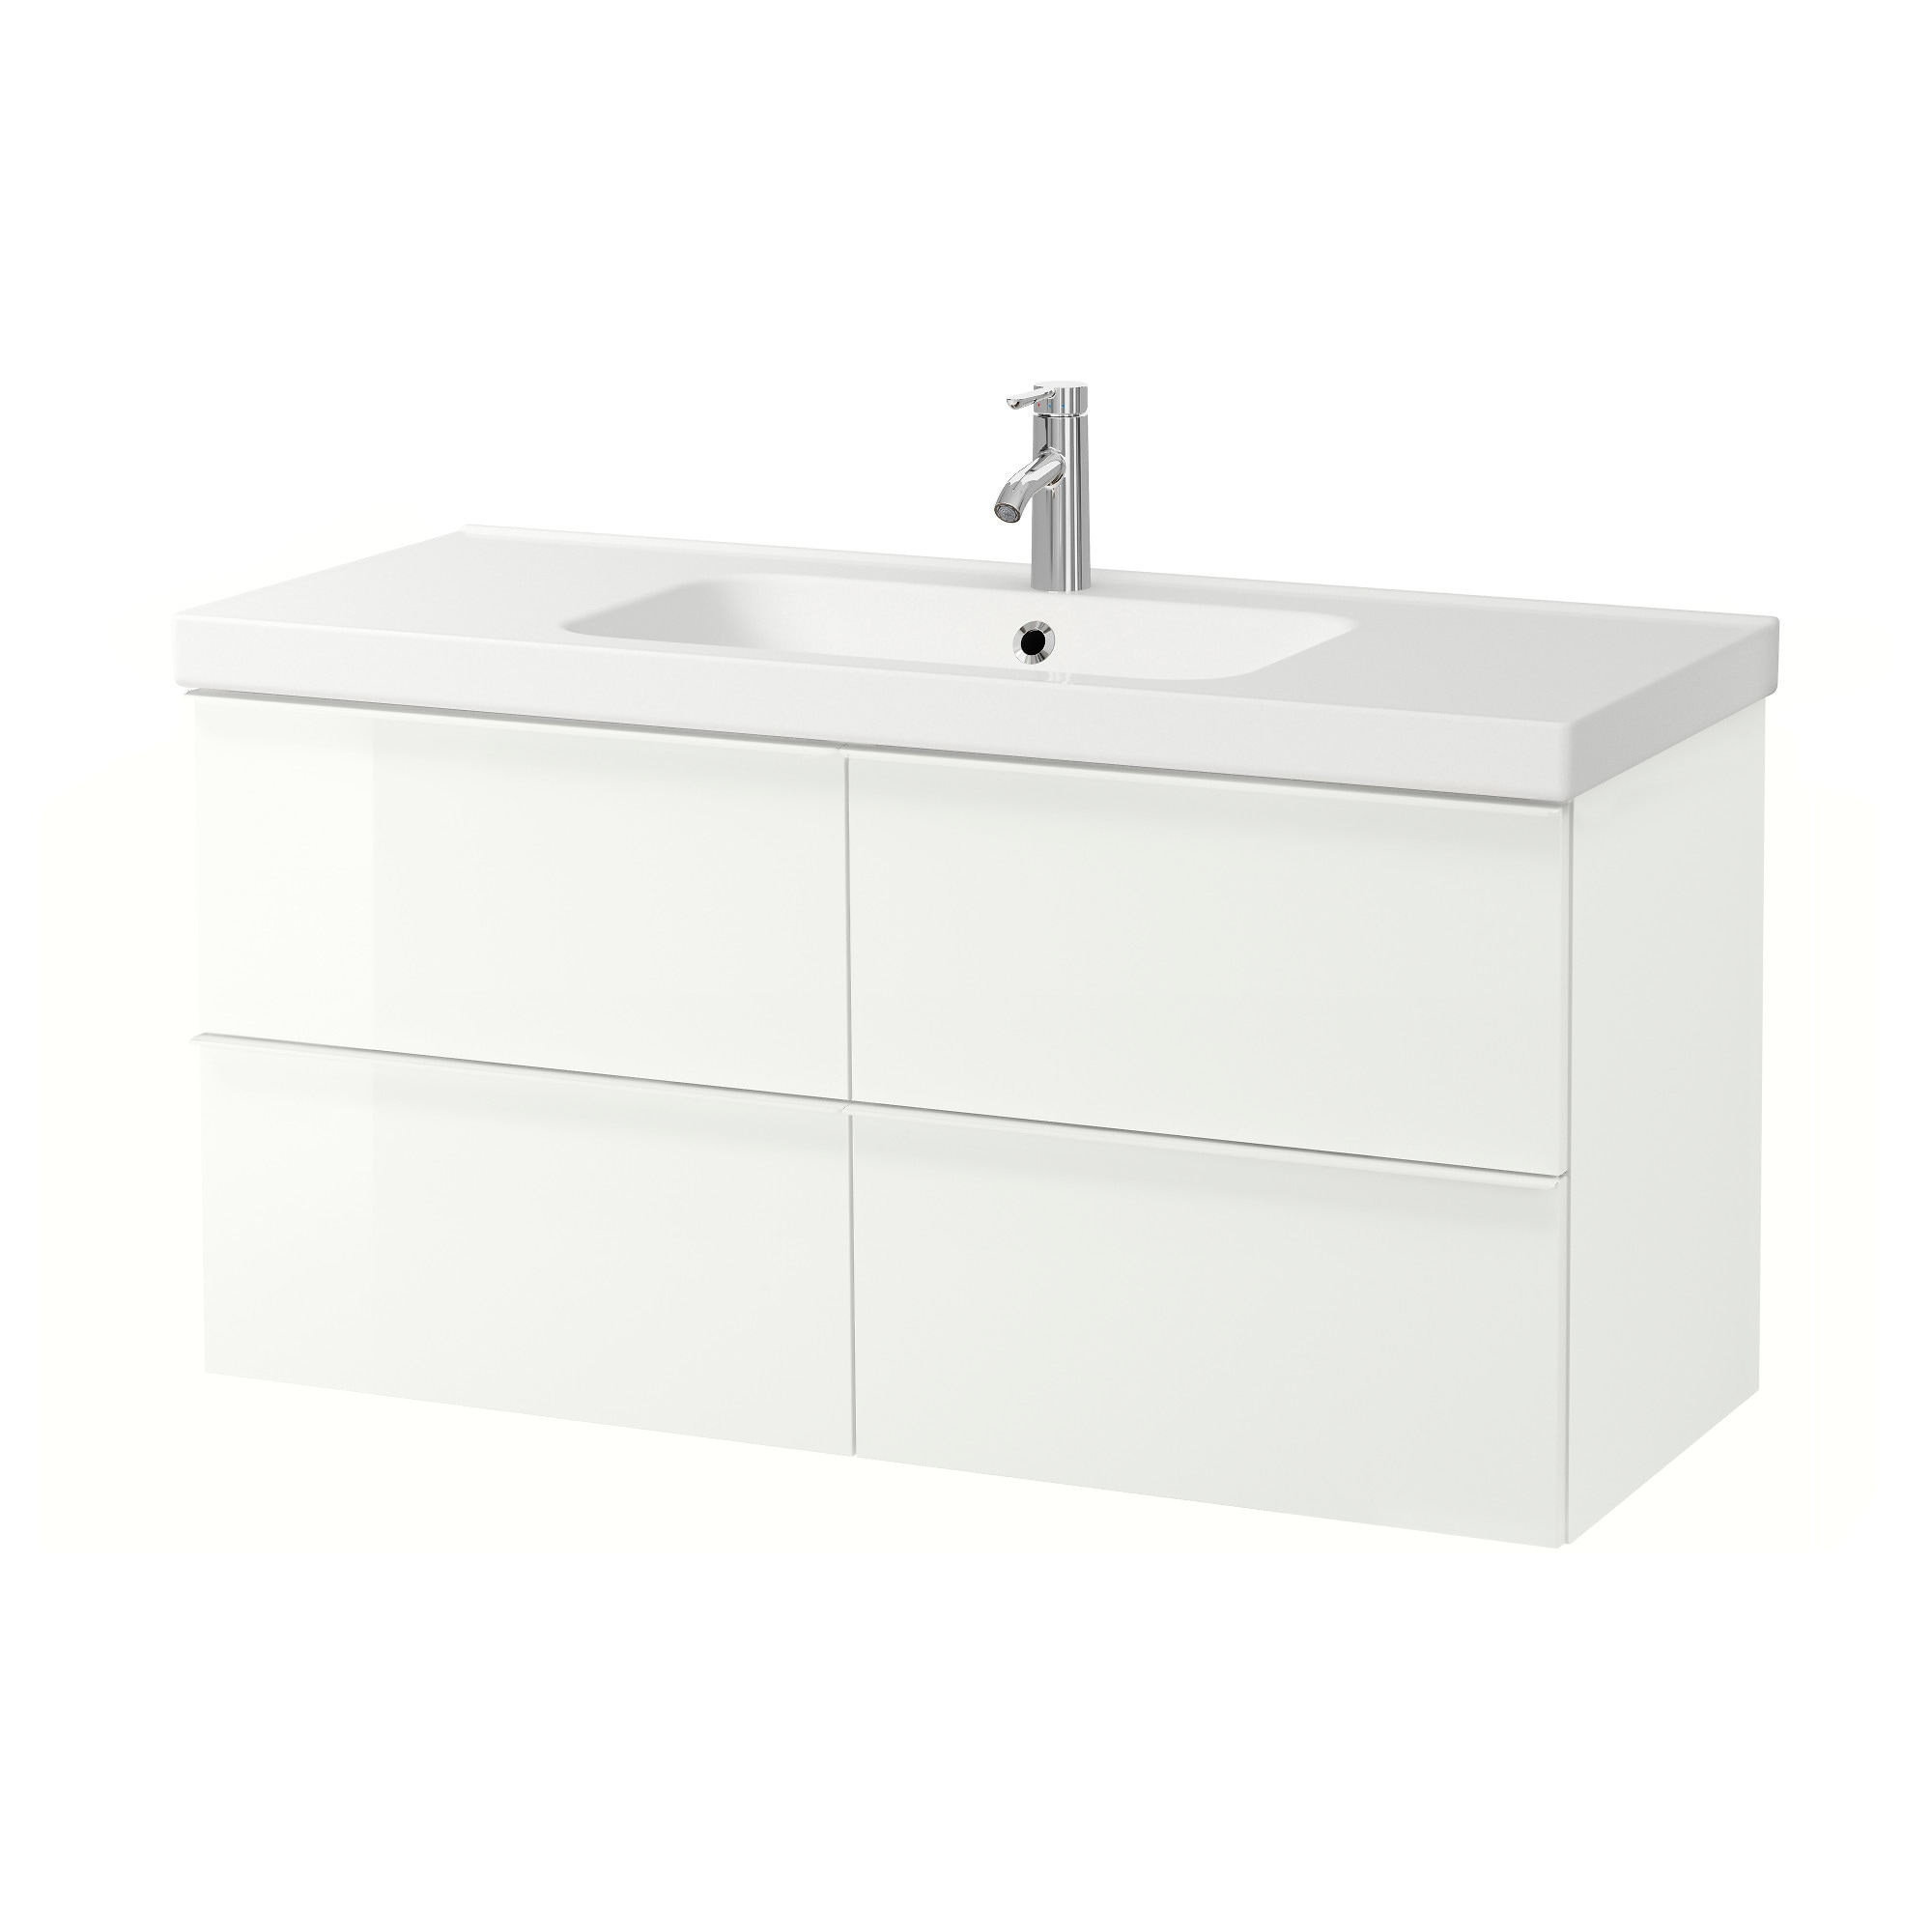 bathroom sink cabinets white. GODMORGON  ODENSVIK Sink cabinet with 4 drawers Resj n white 120x49x64 cm IKEA